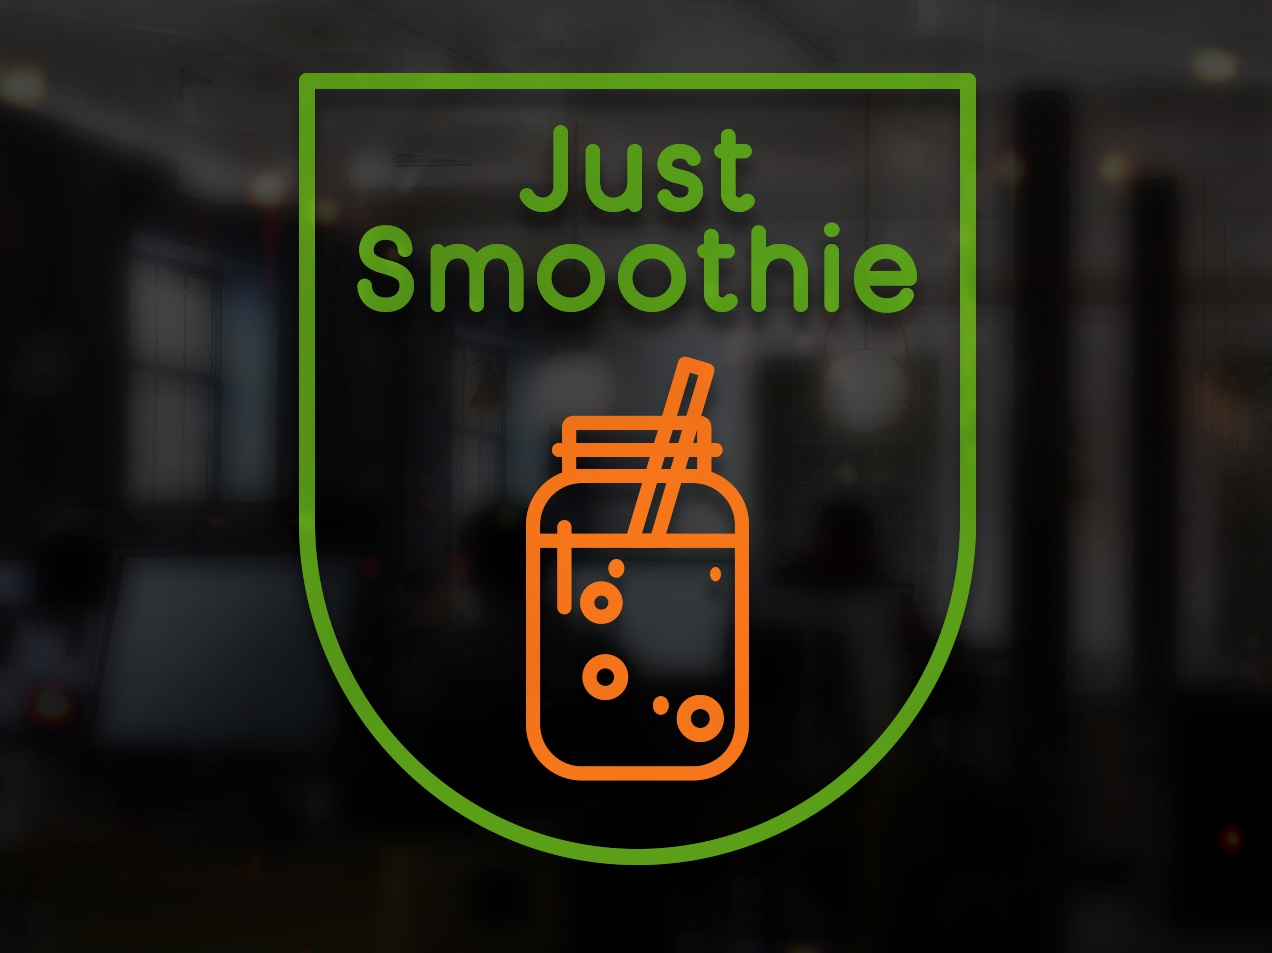 Logo Just Smoothie By Fabian Krotzer On Dribbble